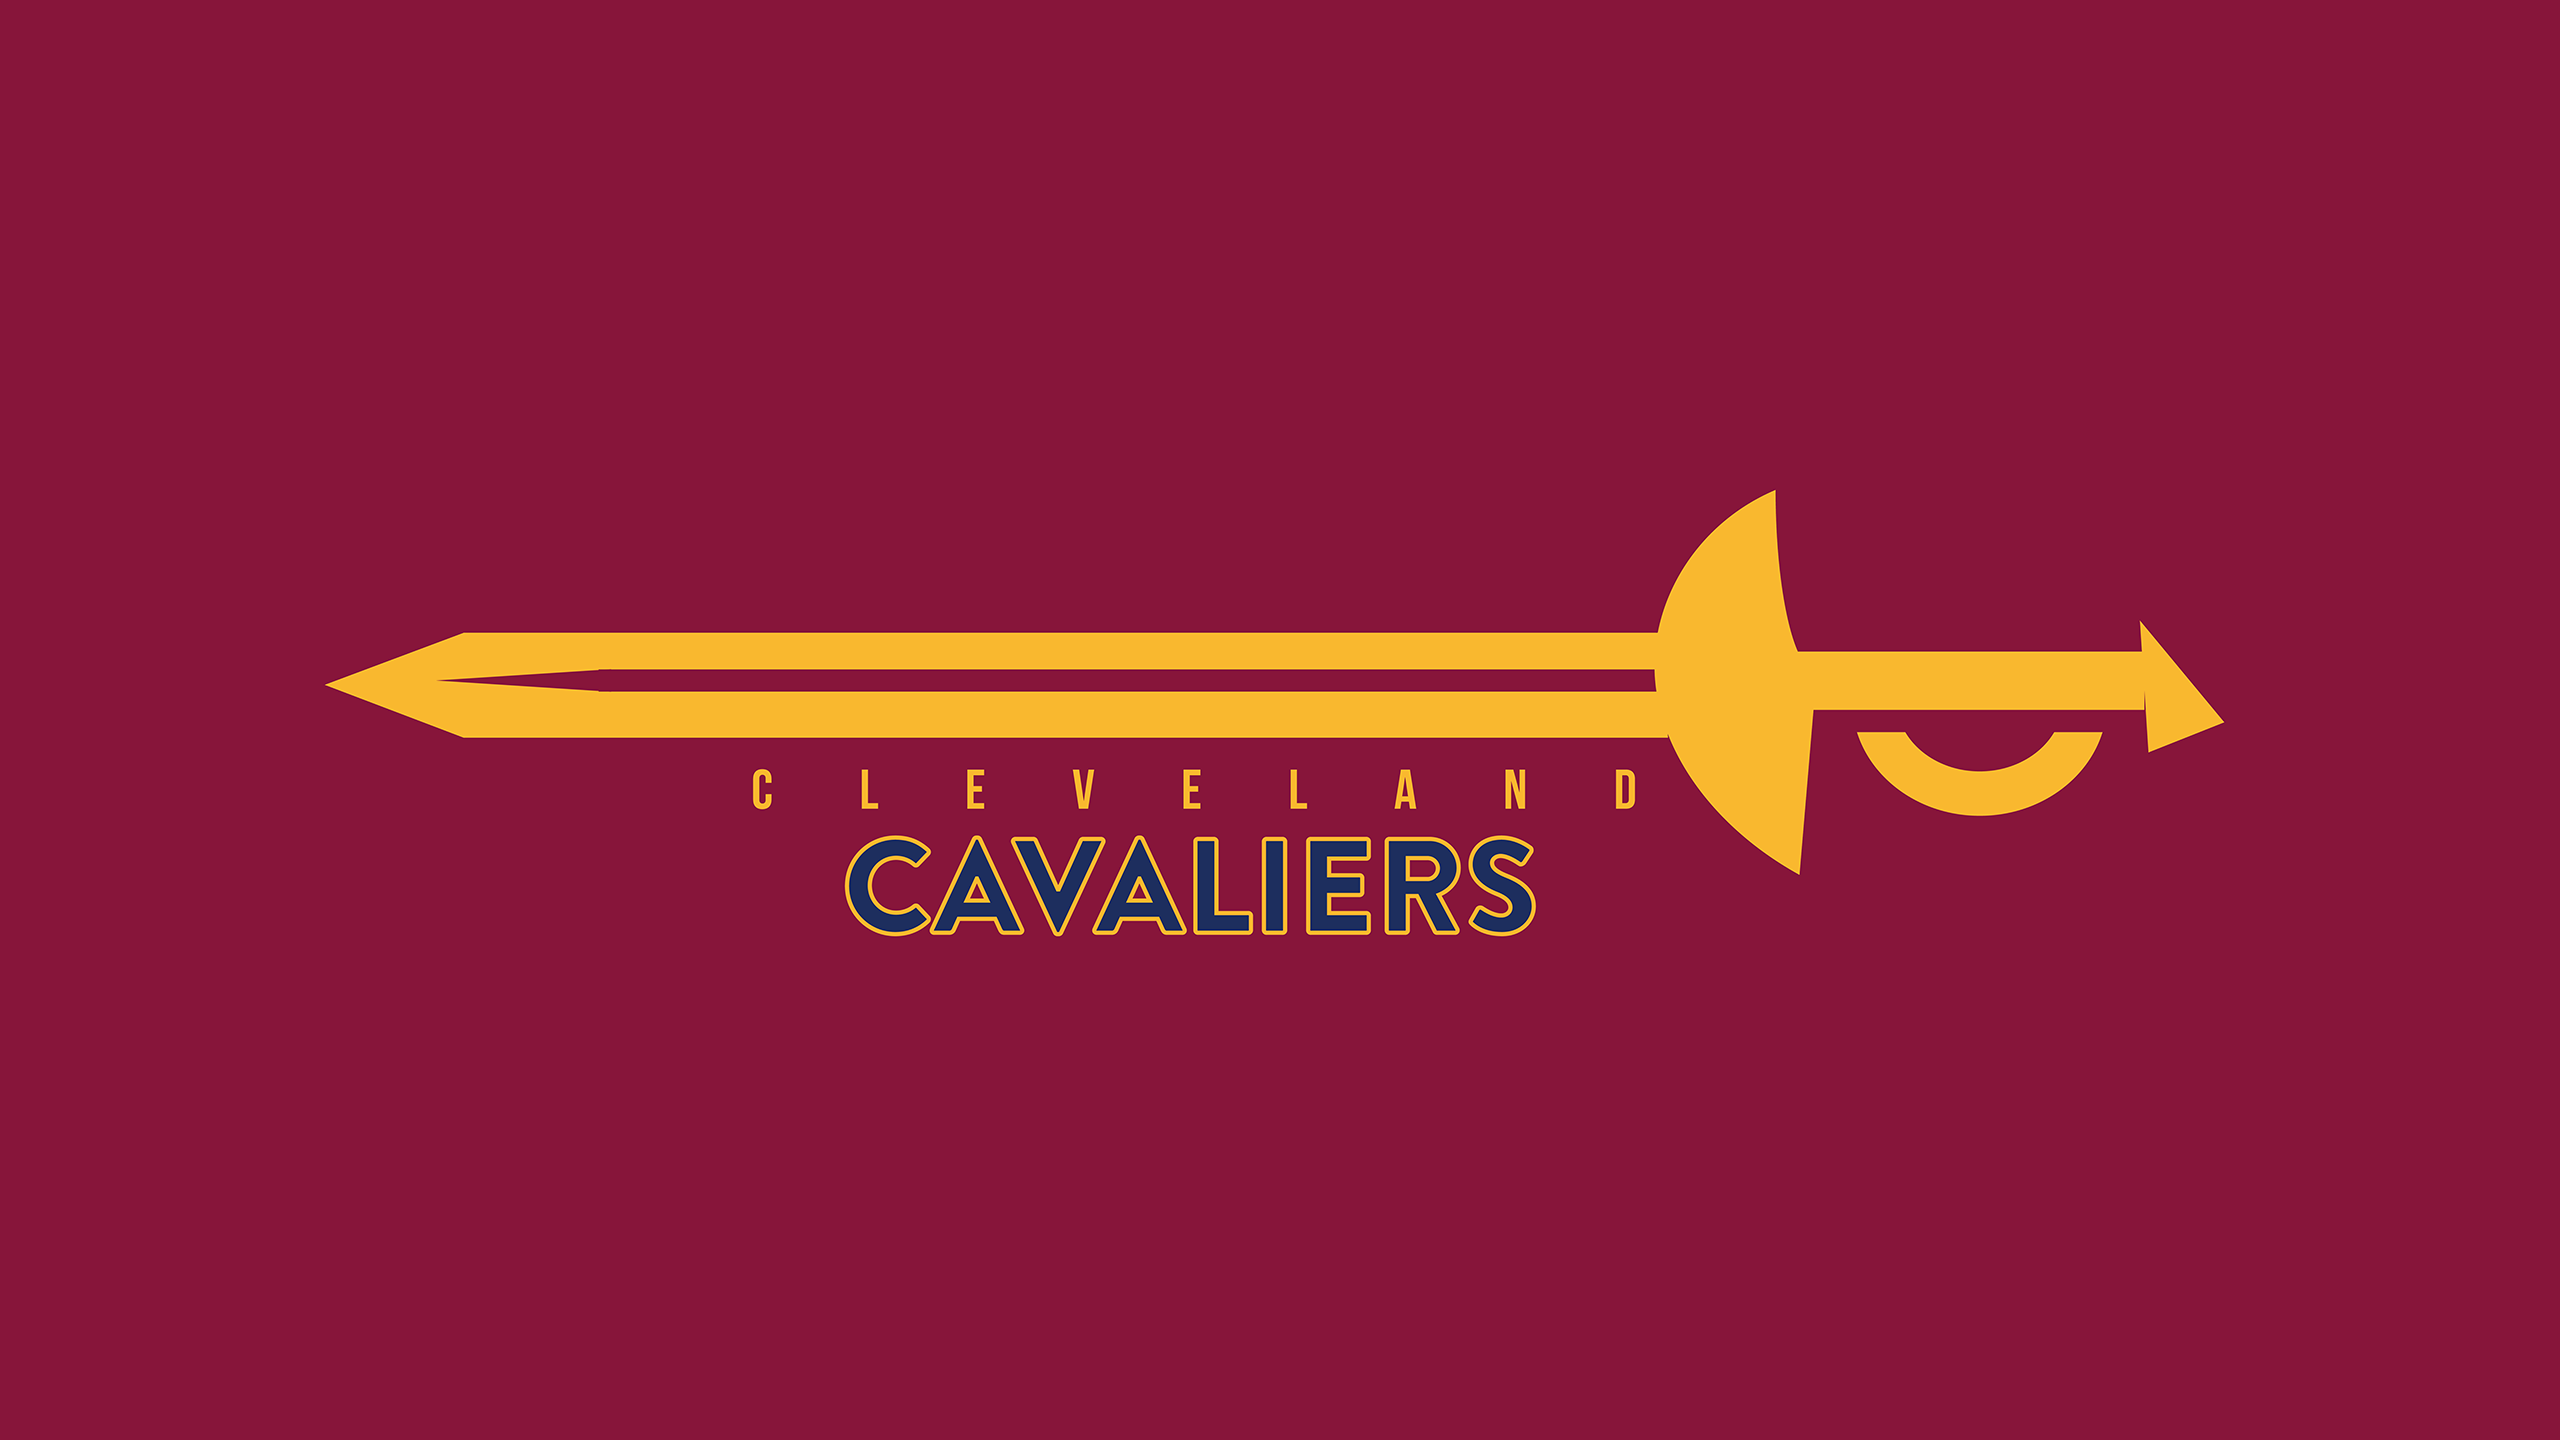 2560x1440 > Cleveland Cavaliers Wallpapers